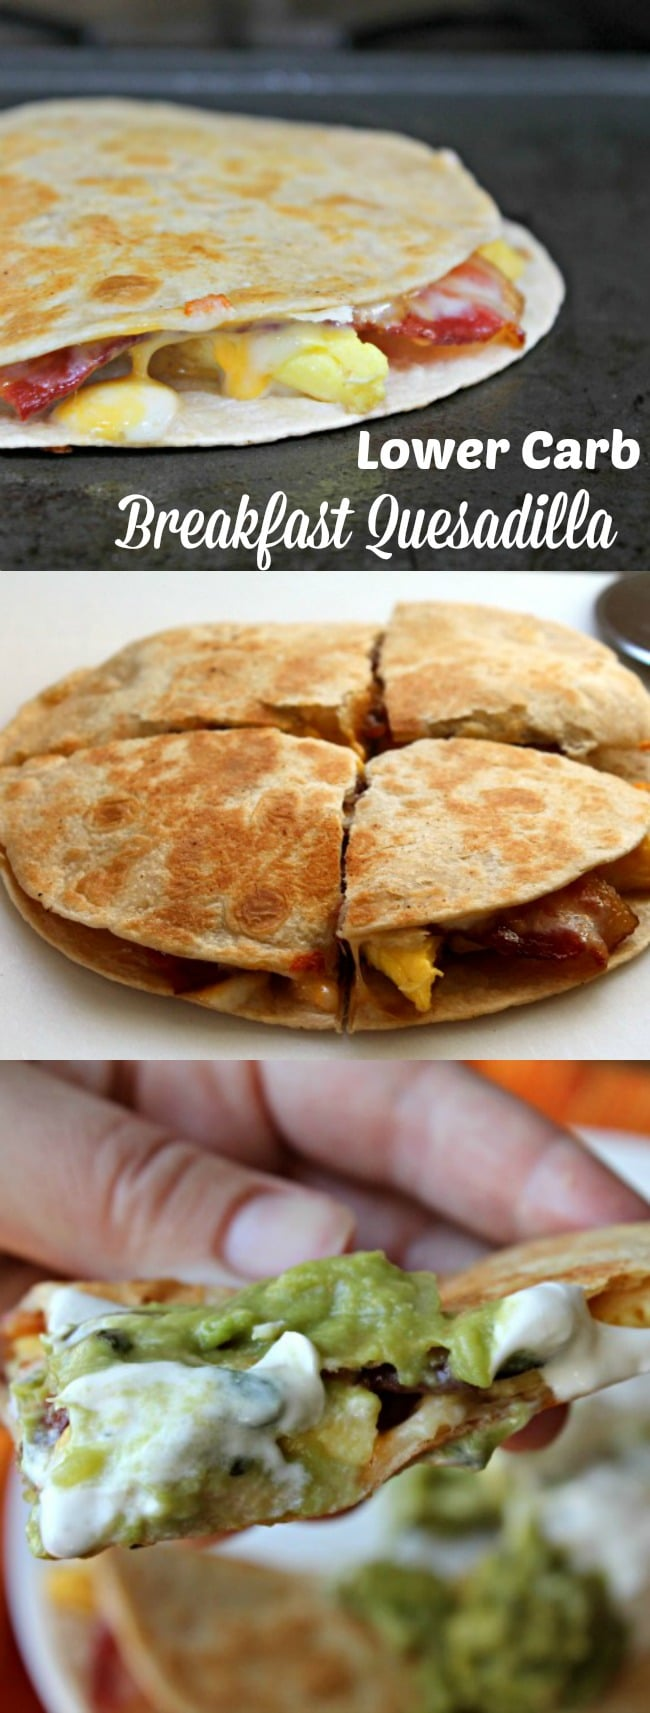 Lower Carb Breakfast Quesadilla - Foody Schmoody Blog | Foody Schmoody ...